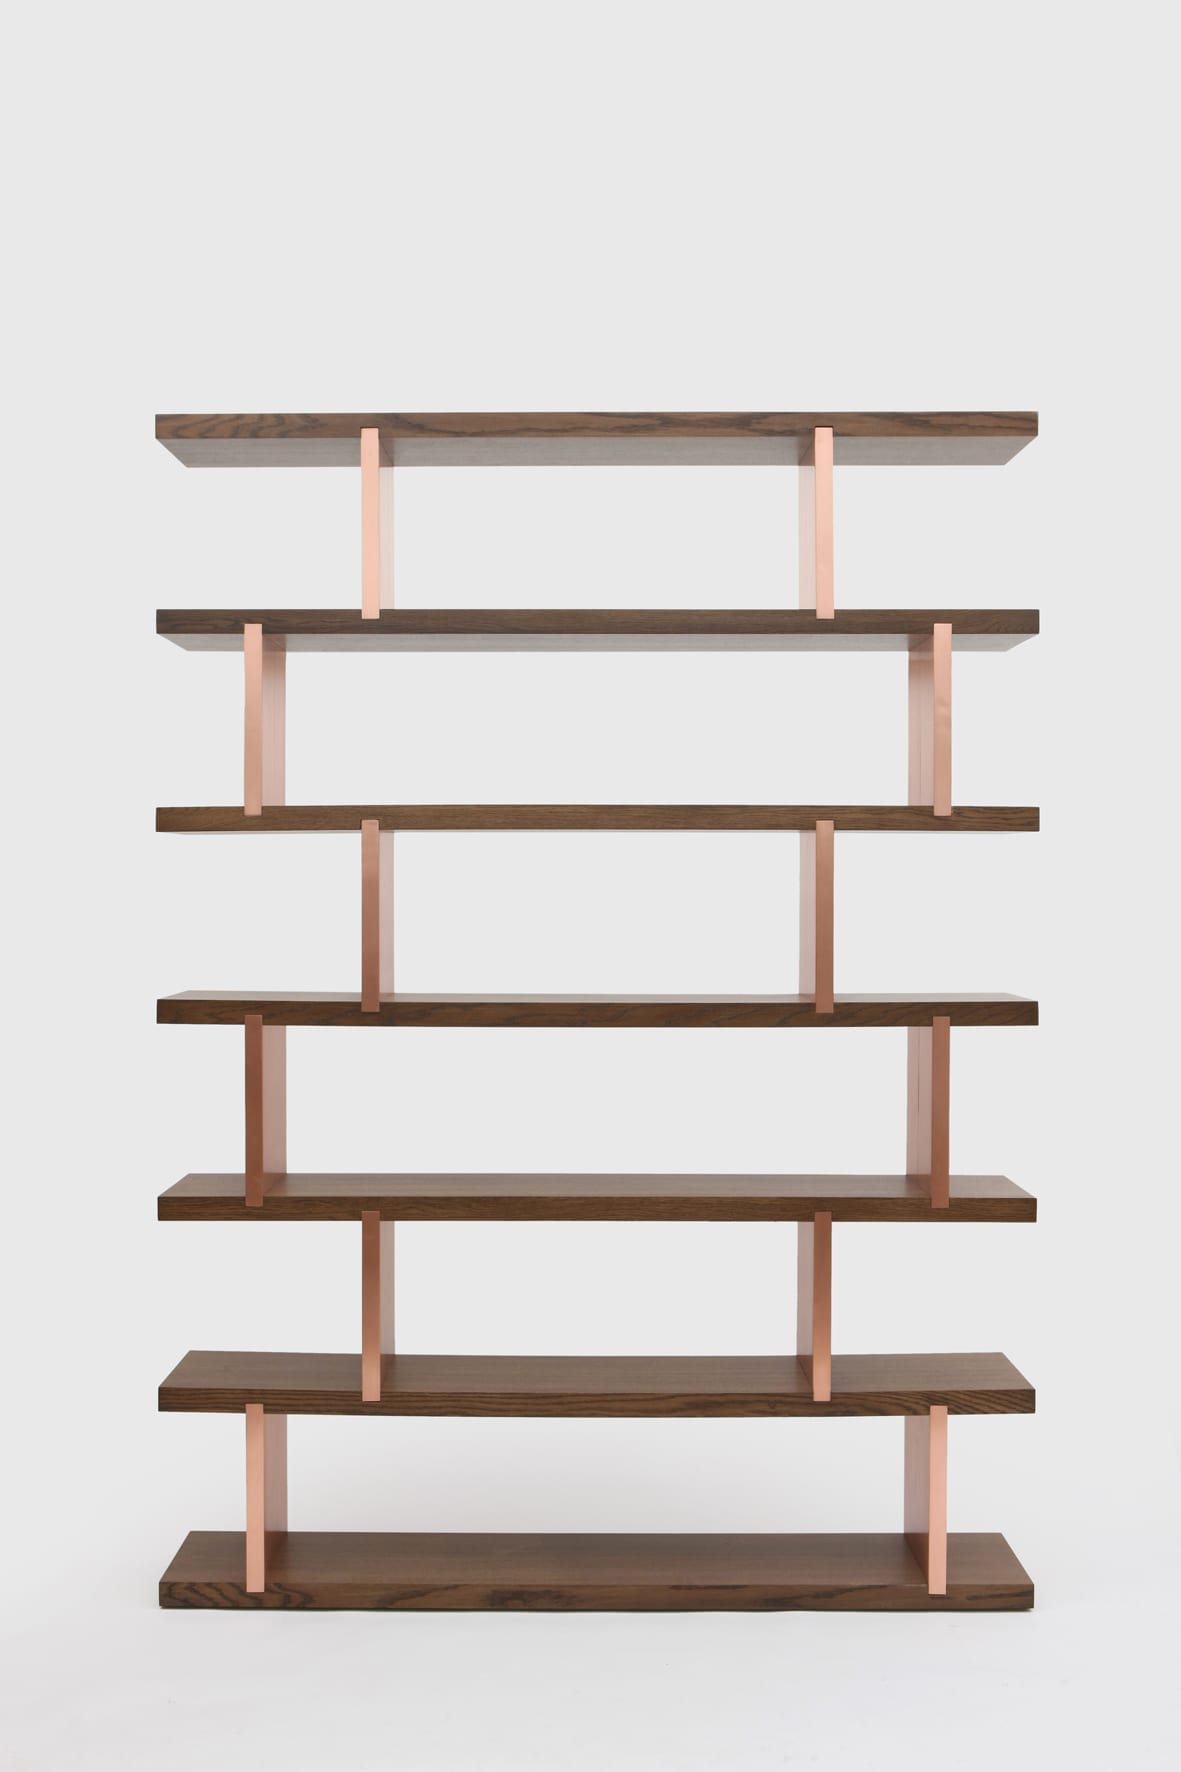 Scattered Shelving by Nada Debs